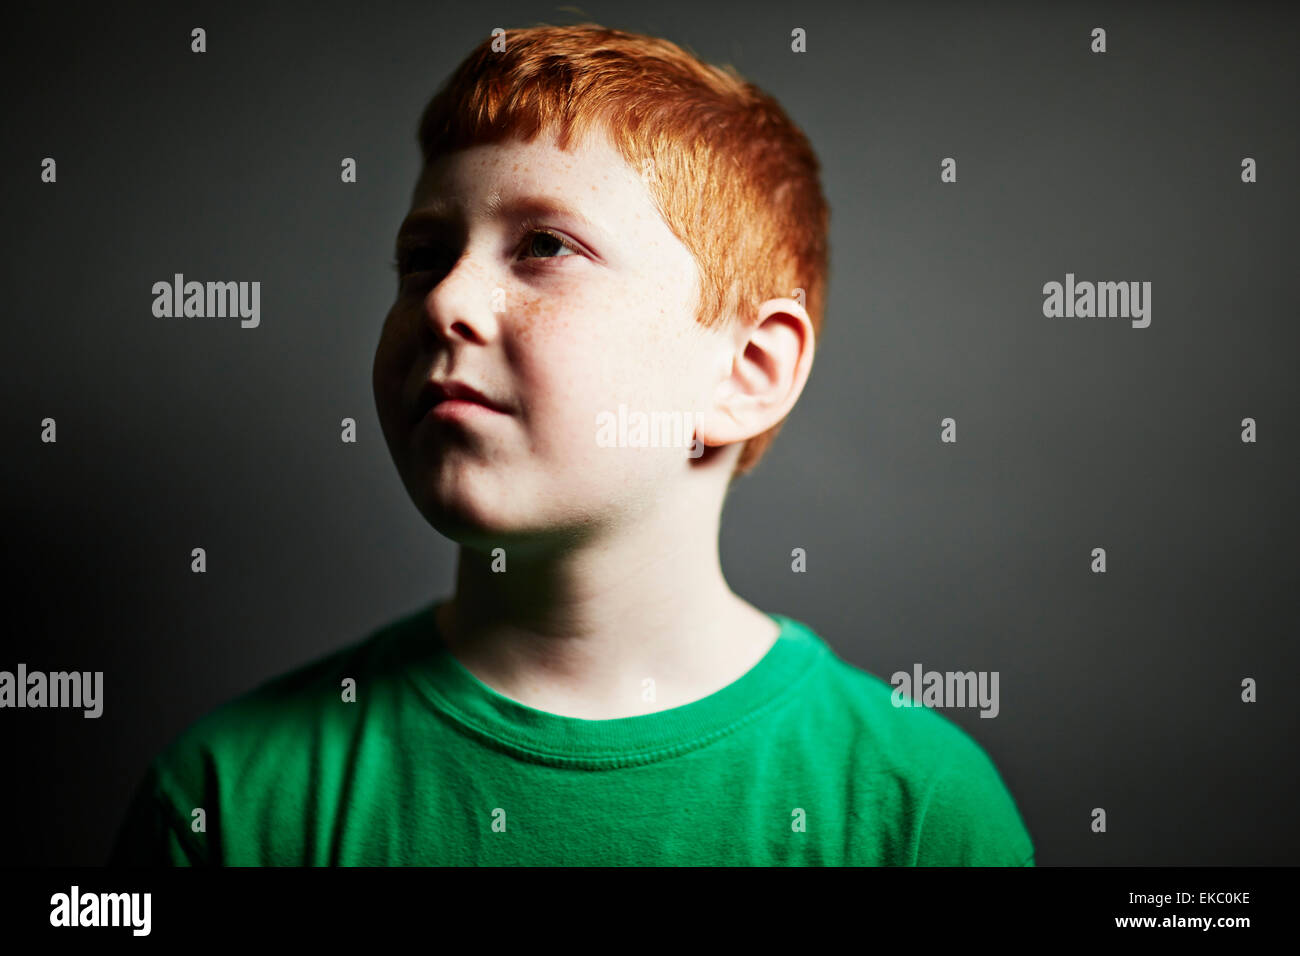 Boy with red hair looking away - Stock Image